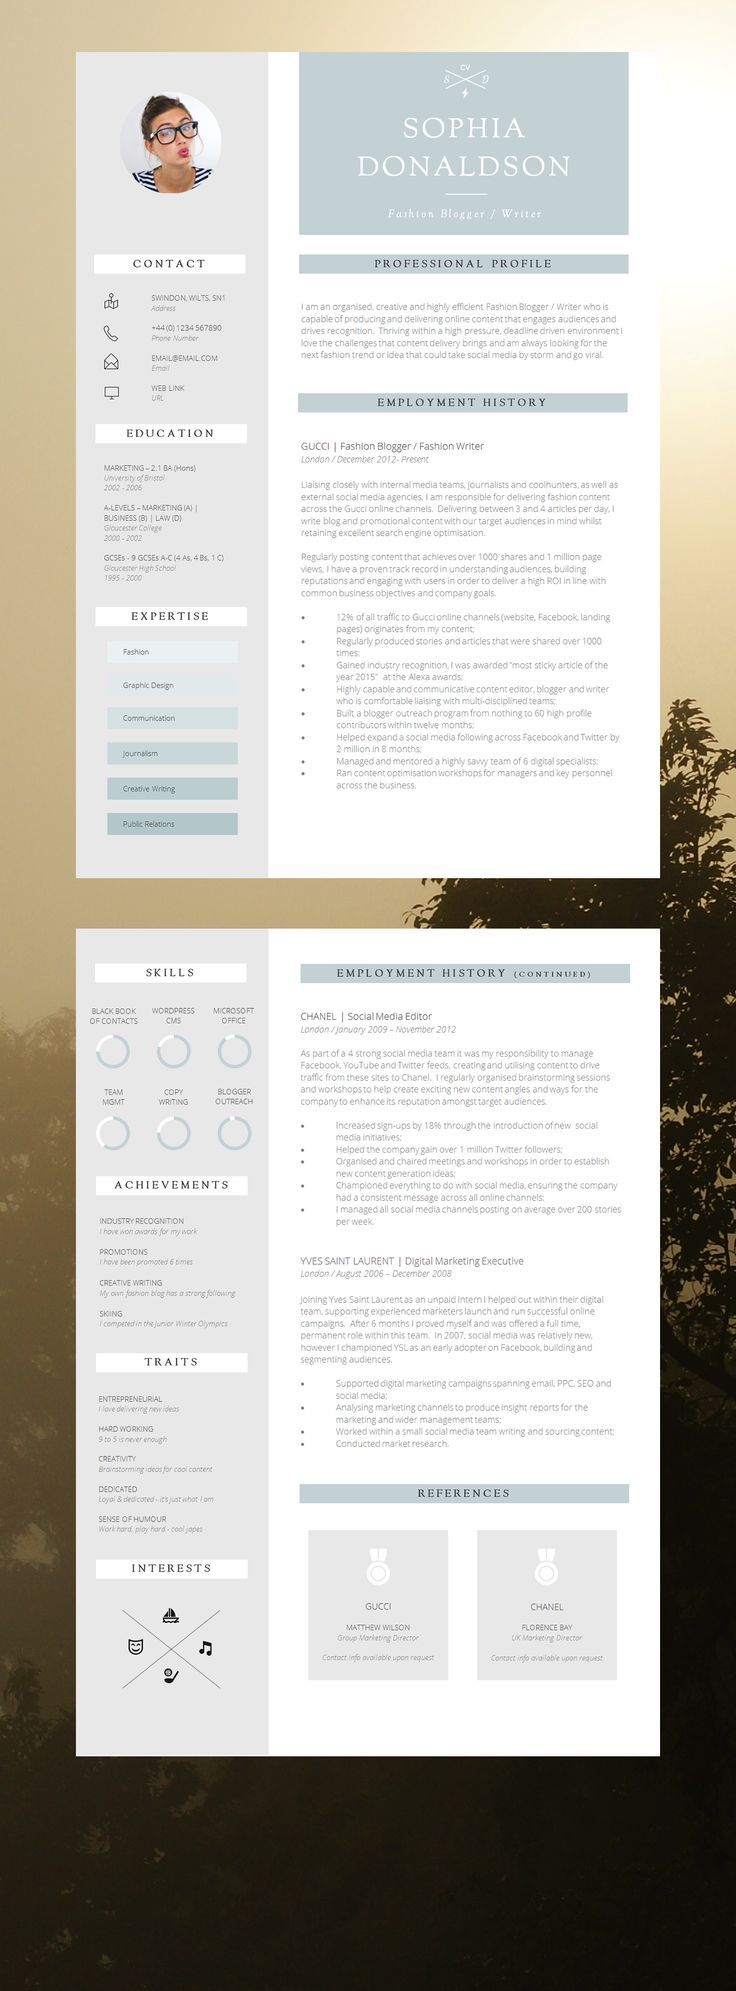 Cv Templates Design%0A CV Template   Modern CV Design  Don u    t underestimate the power of a  Professional